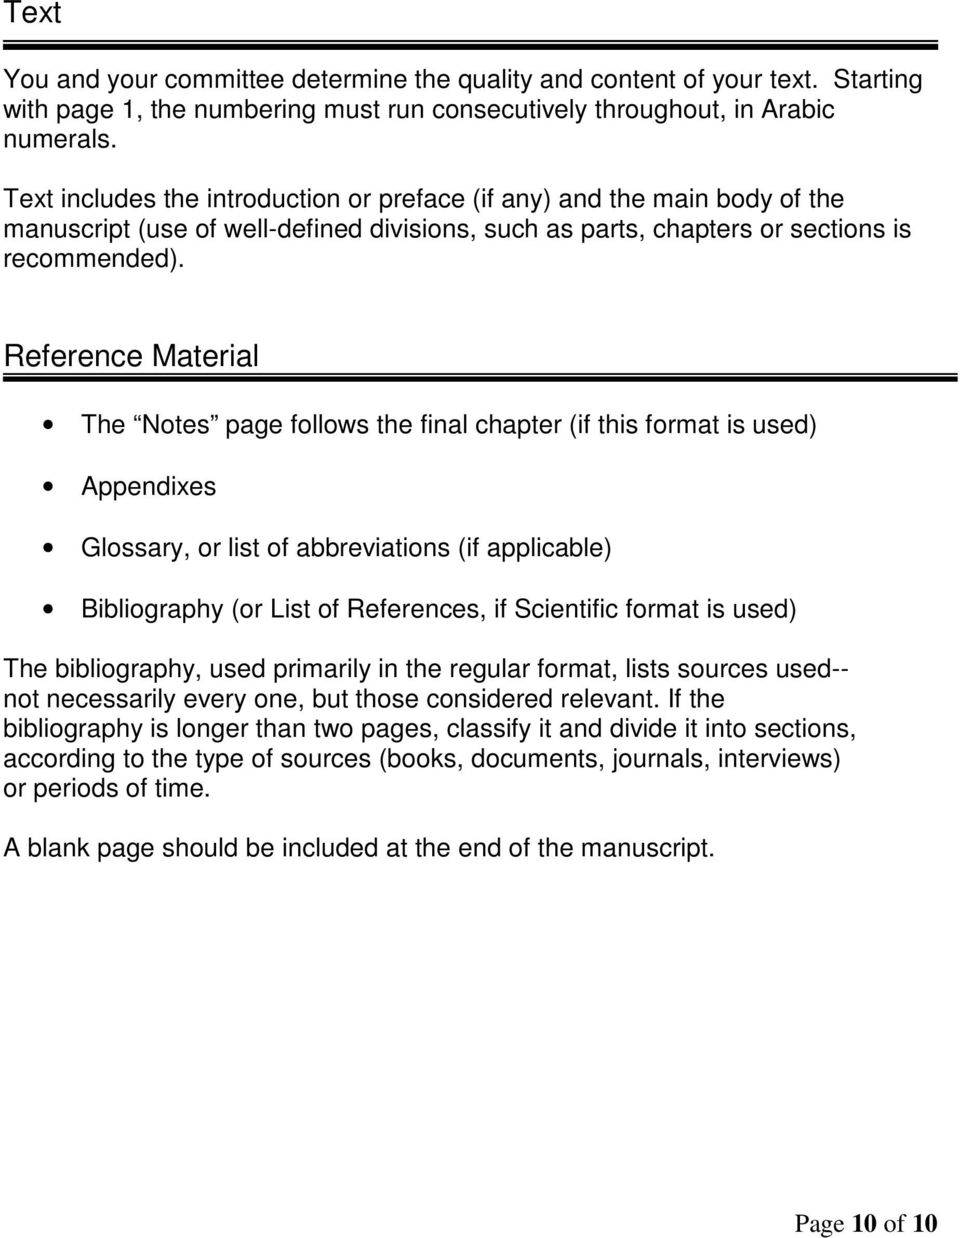 Reference Material The Notes page follows the final chapter (if this format is used) Appendixes Glossary, or list of abbreviations (if applicable) Bibliography (or List of References, if Scientific